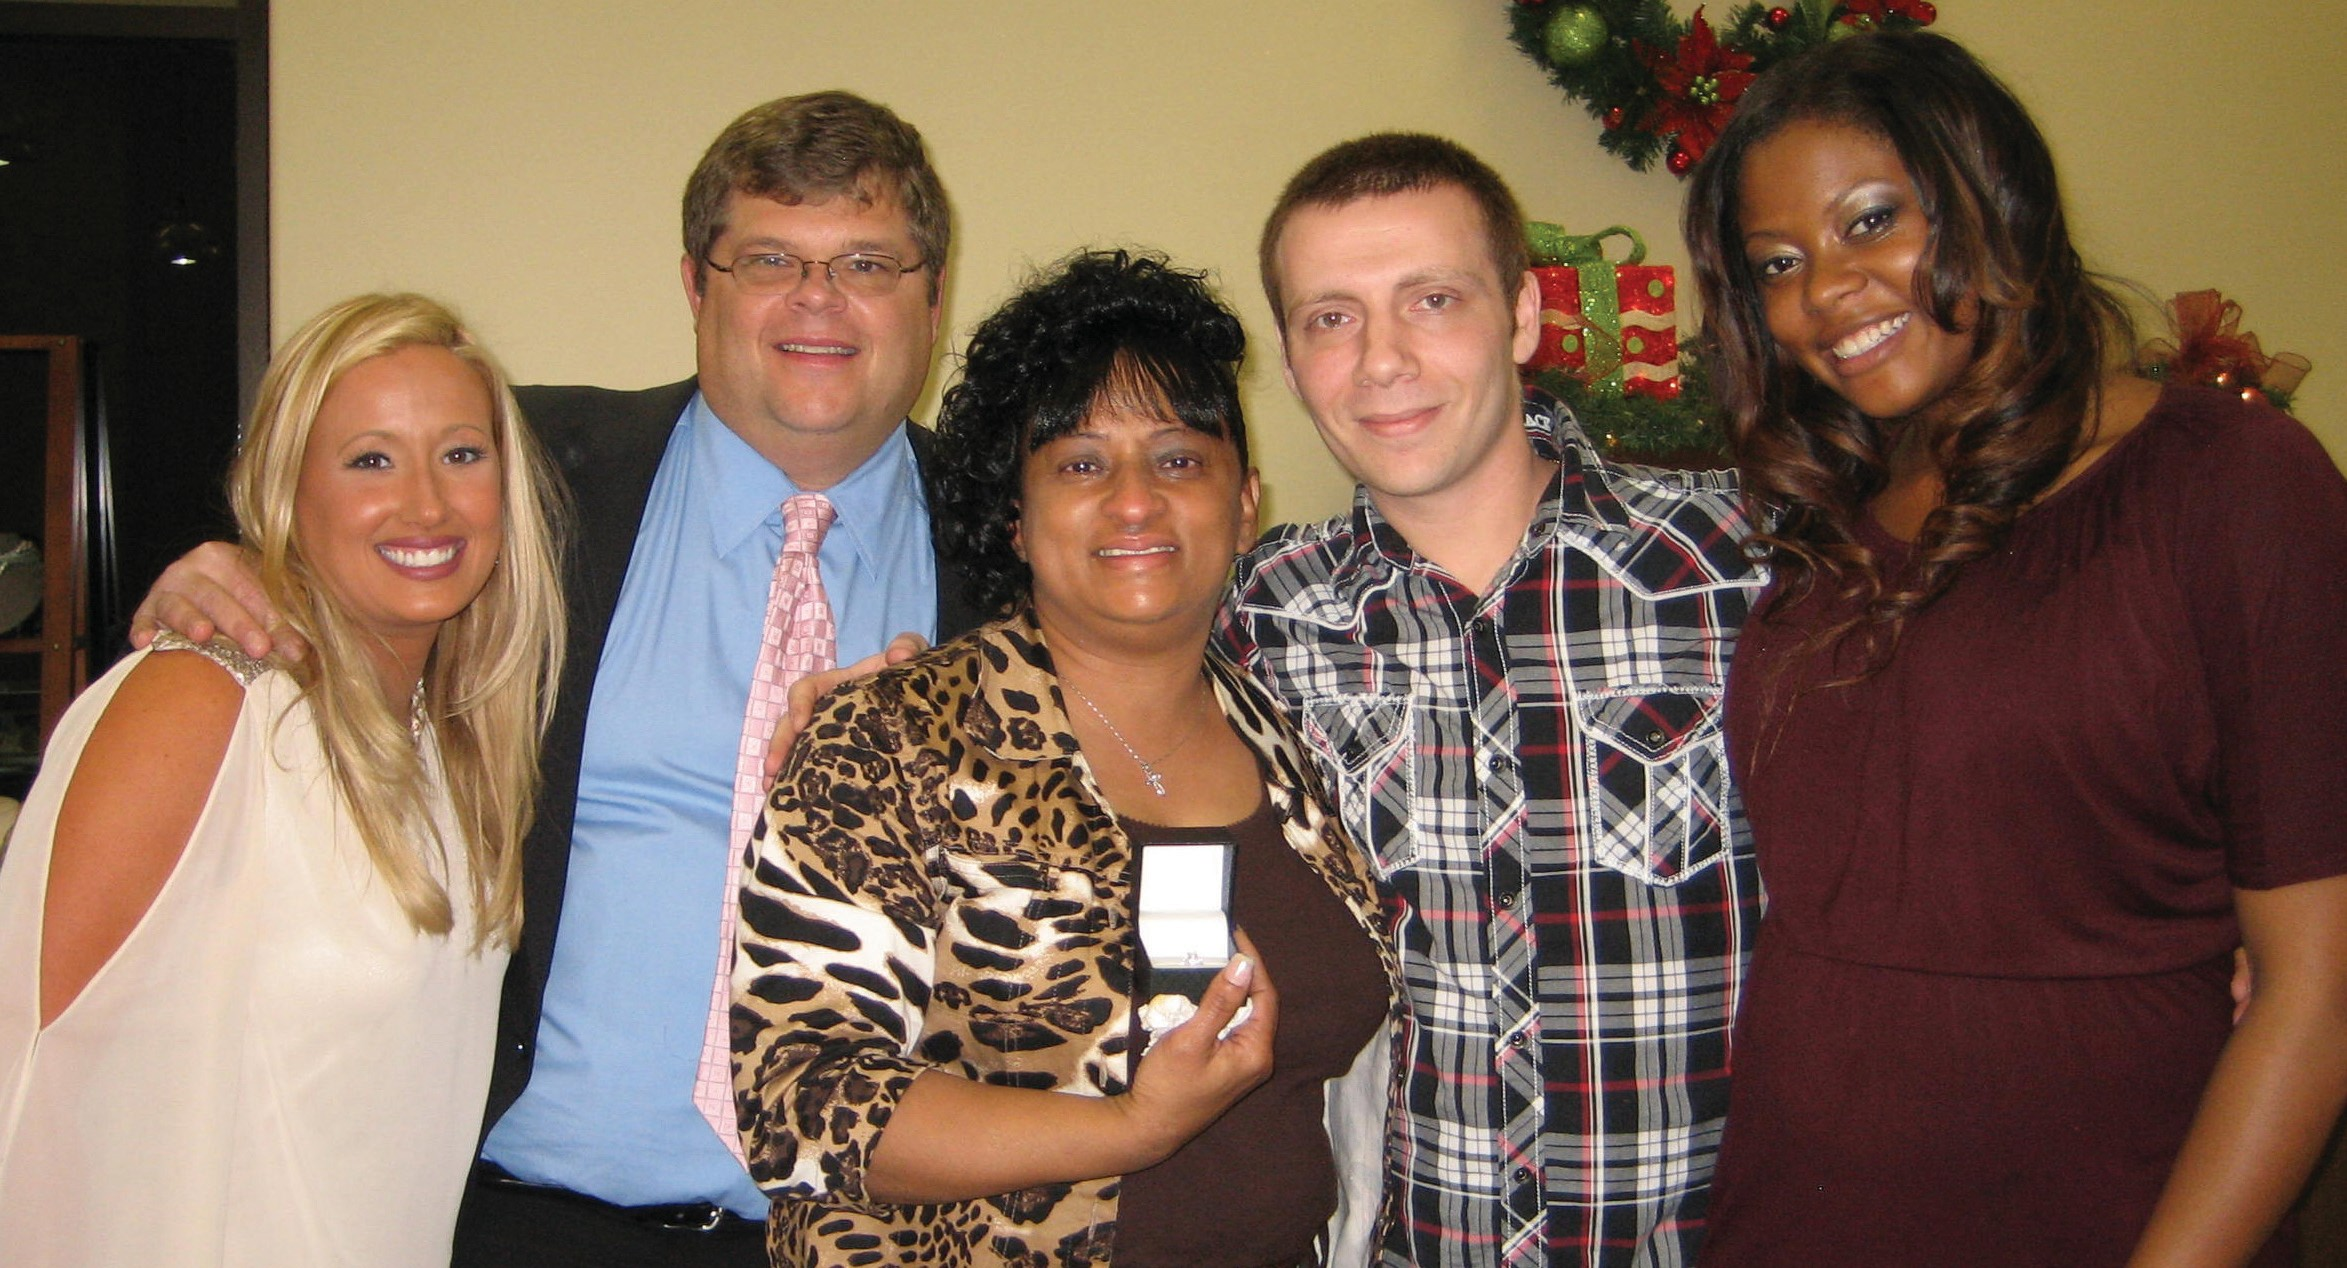 From left, Jenna and Marion Harkleroad, owners of Harkleroad Diamonds & Fine Jewelry, with Patricia Brantley, and Alessandro Griffith and spouse.